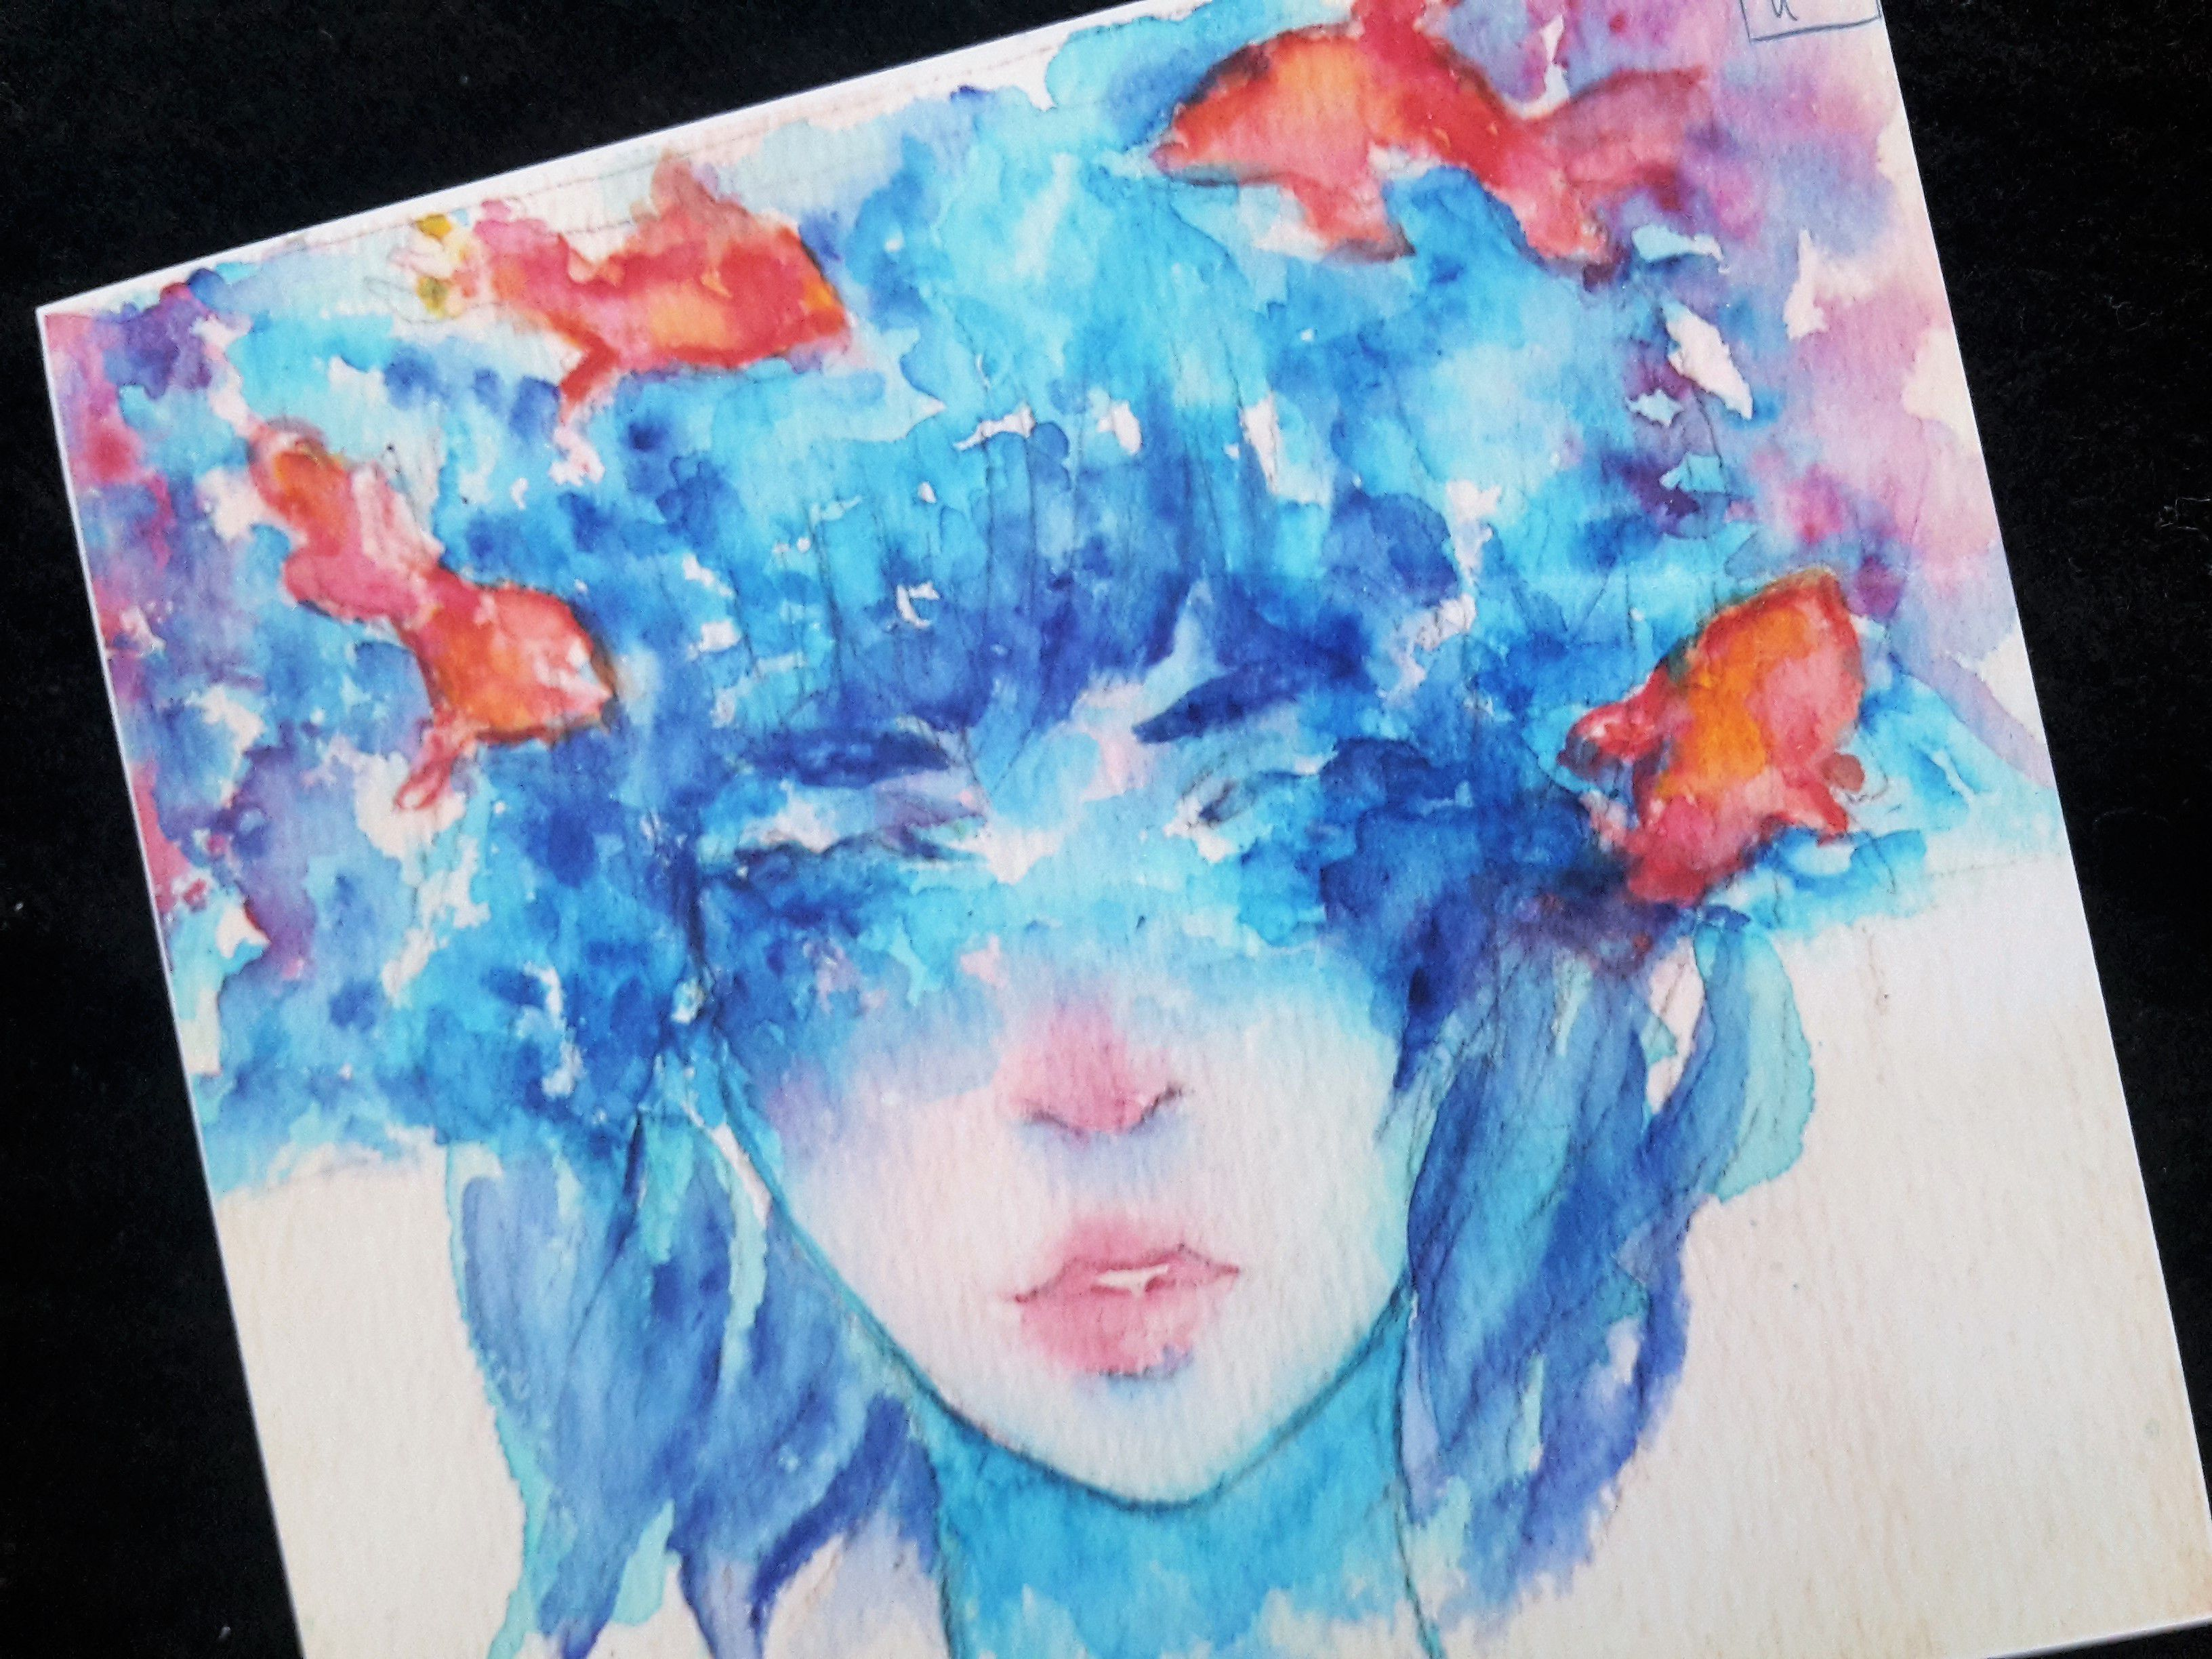 beautiful commission handmade painting portrait picture color illustration watercolor traditional artwork art artist